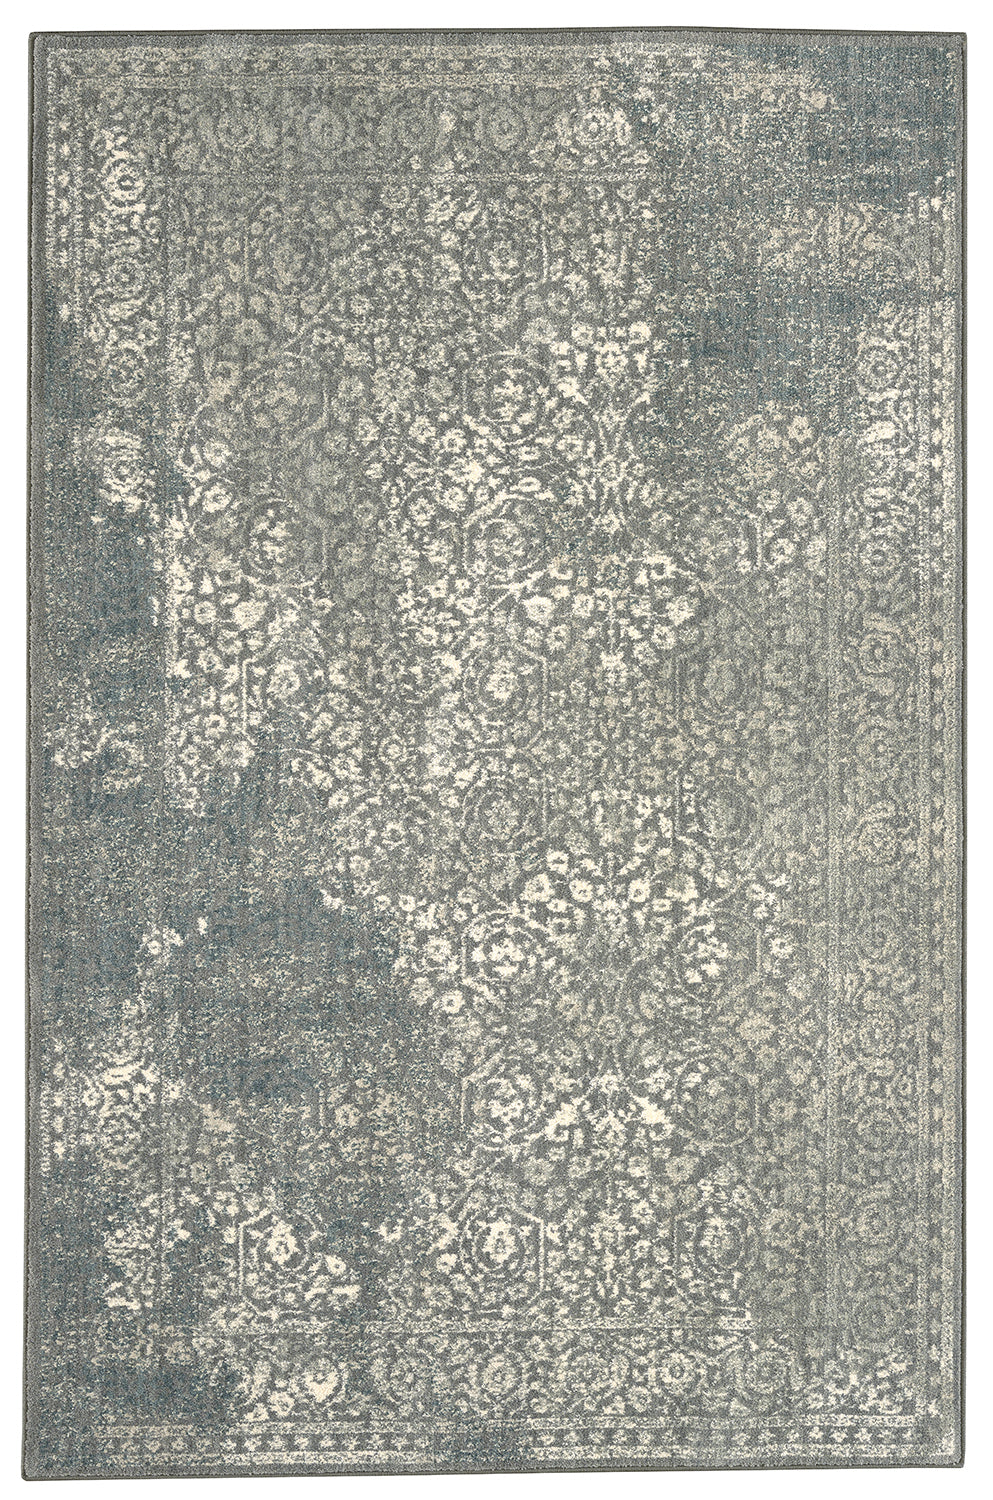 Karastan Euphoria Ayr Willow Grey Area Rug main image